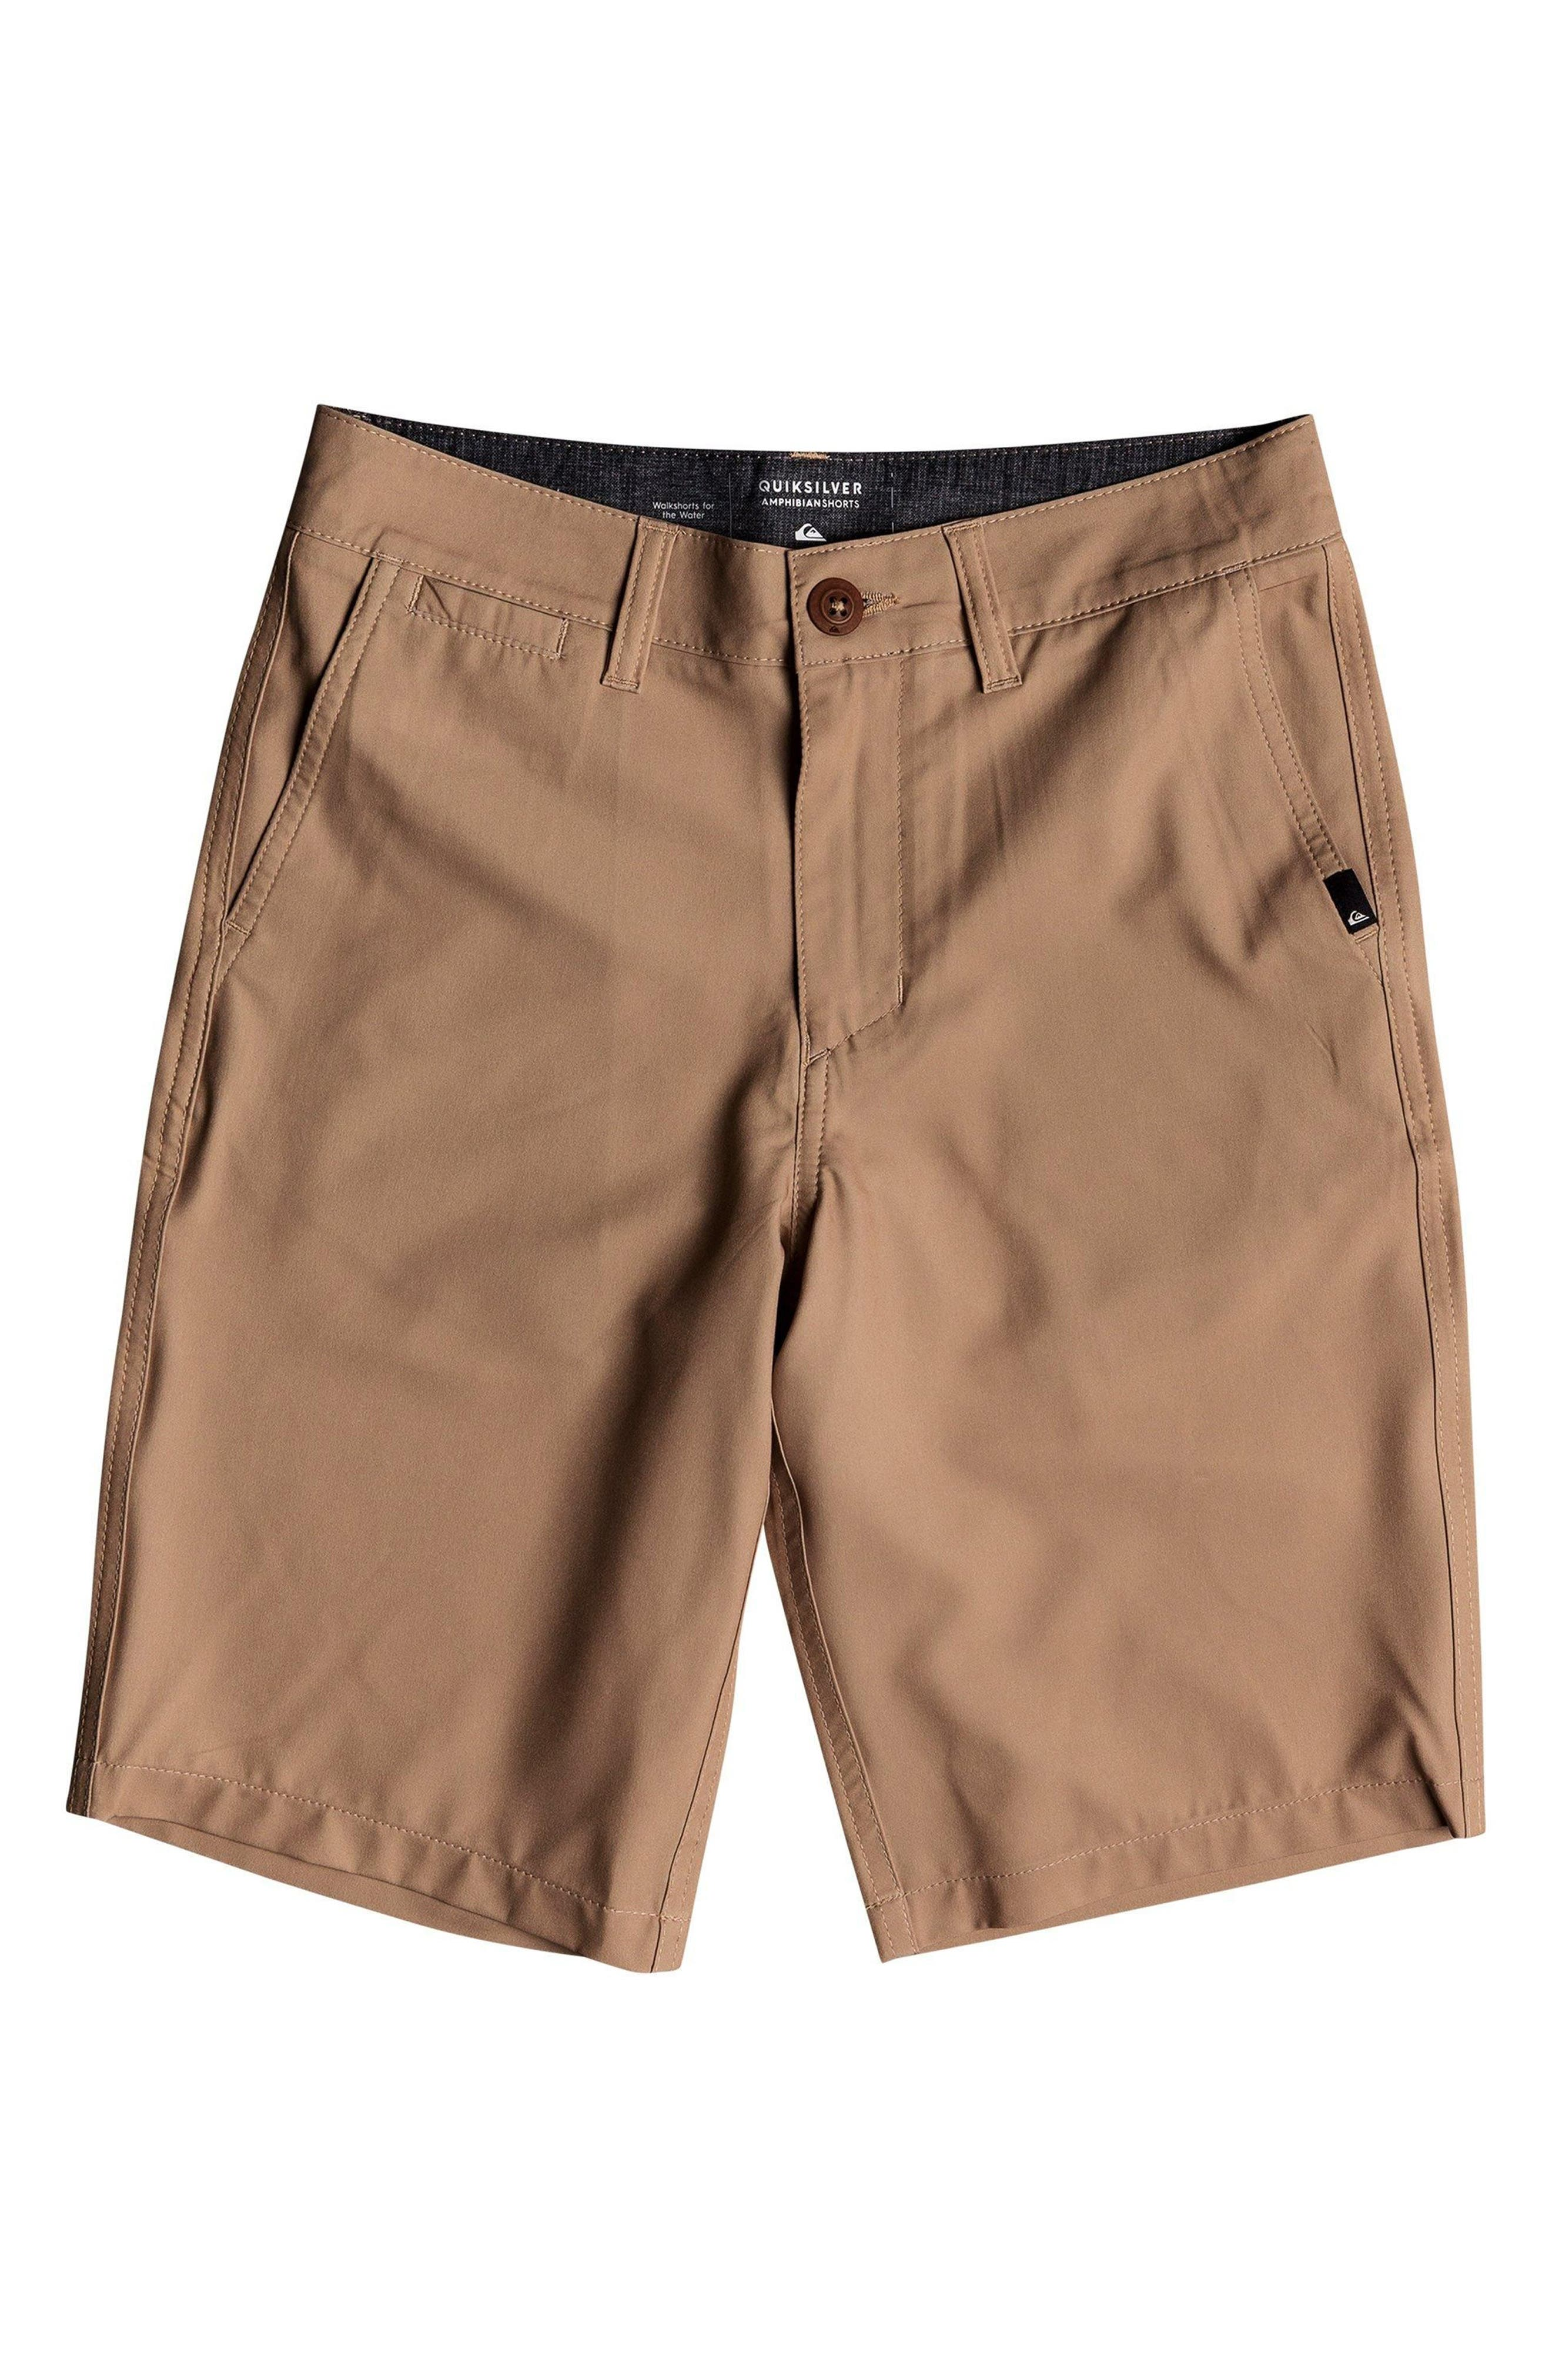 Union Amphibian Hybrid Shorts,                             Main thumbnail 1, color,